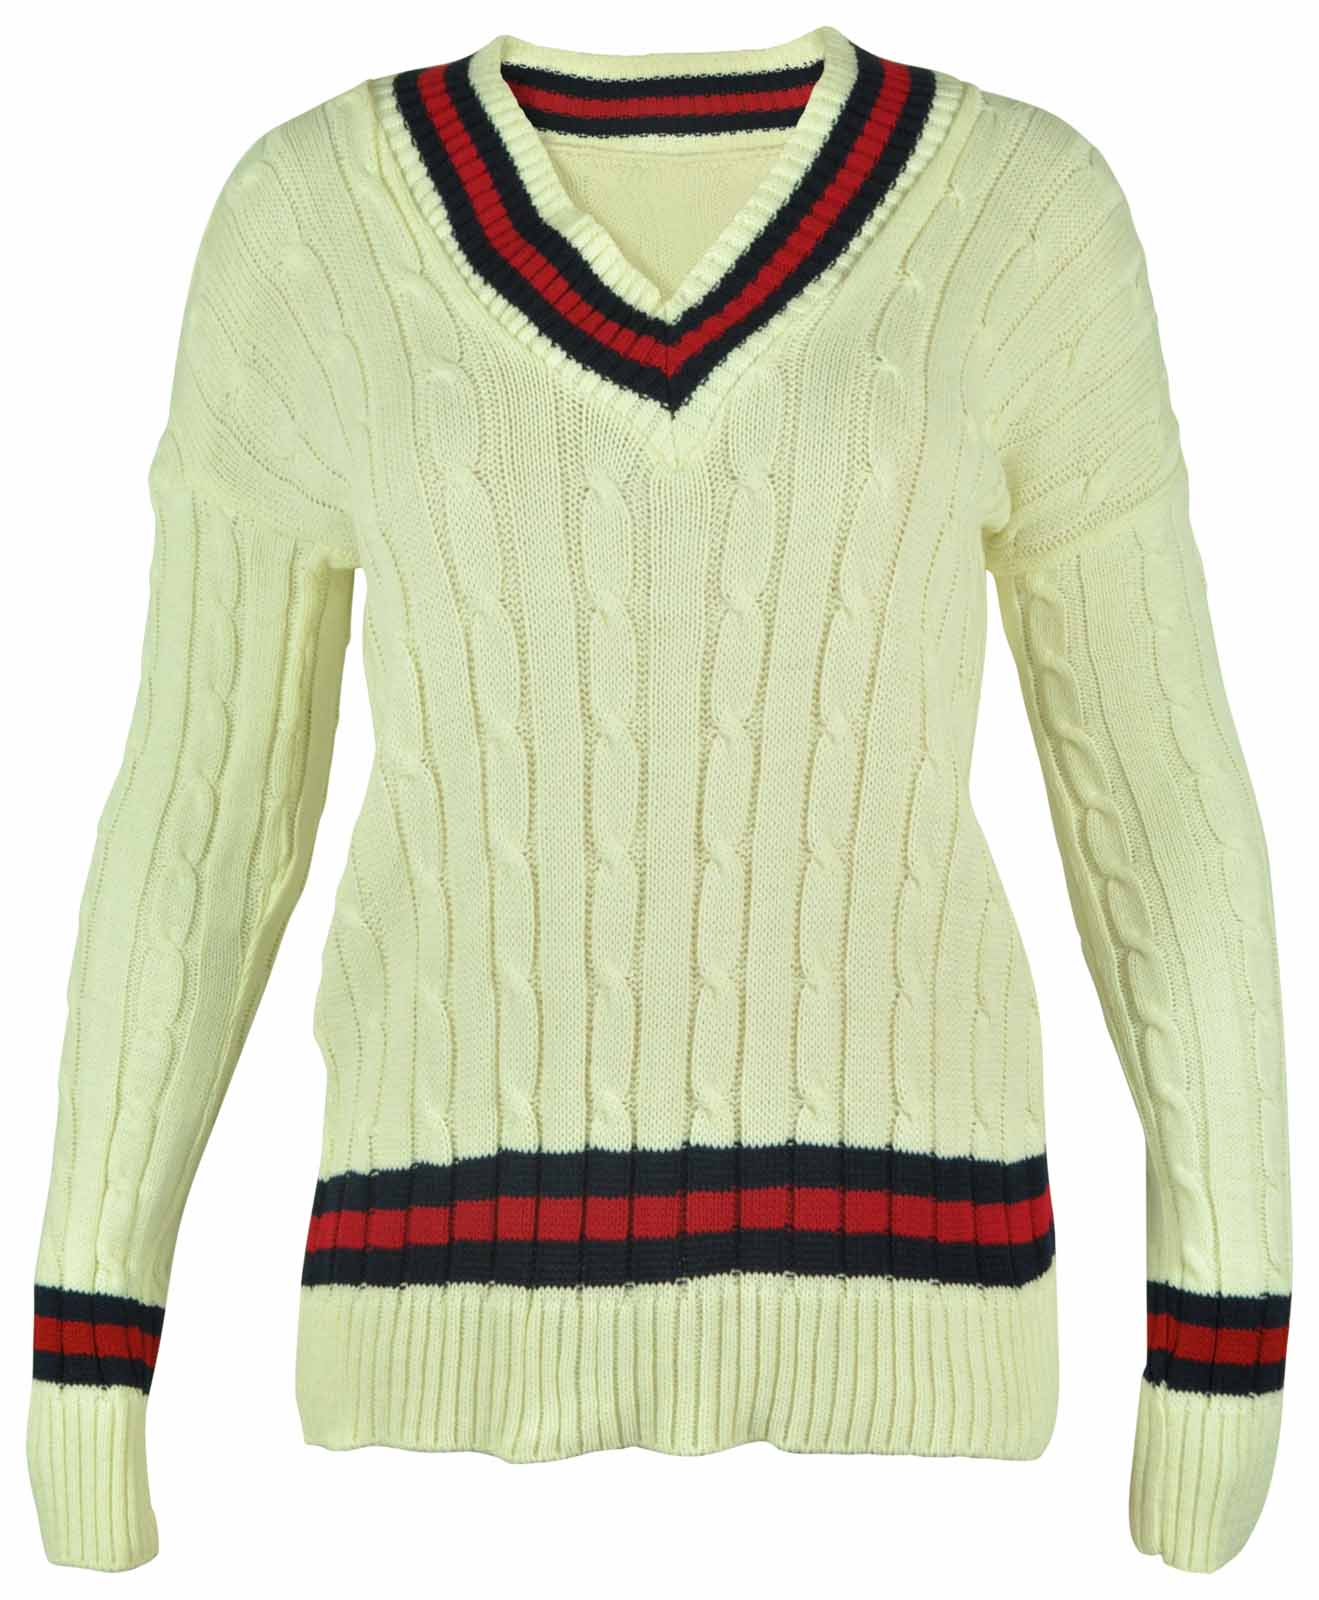 Knitting Pattern For Cricket Sweater : NEW LADIES V NECK CABLE KNITTED CRICKET JUMPER WOMENS STRETCH LONG TOP SIZE 8-16